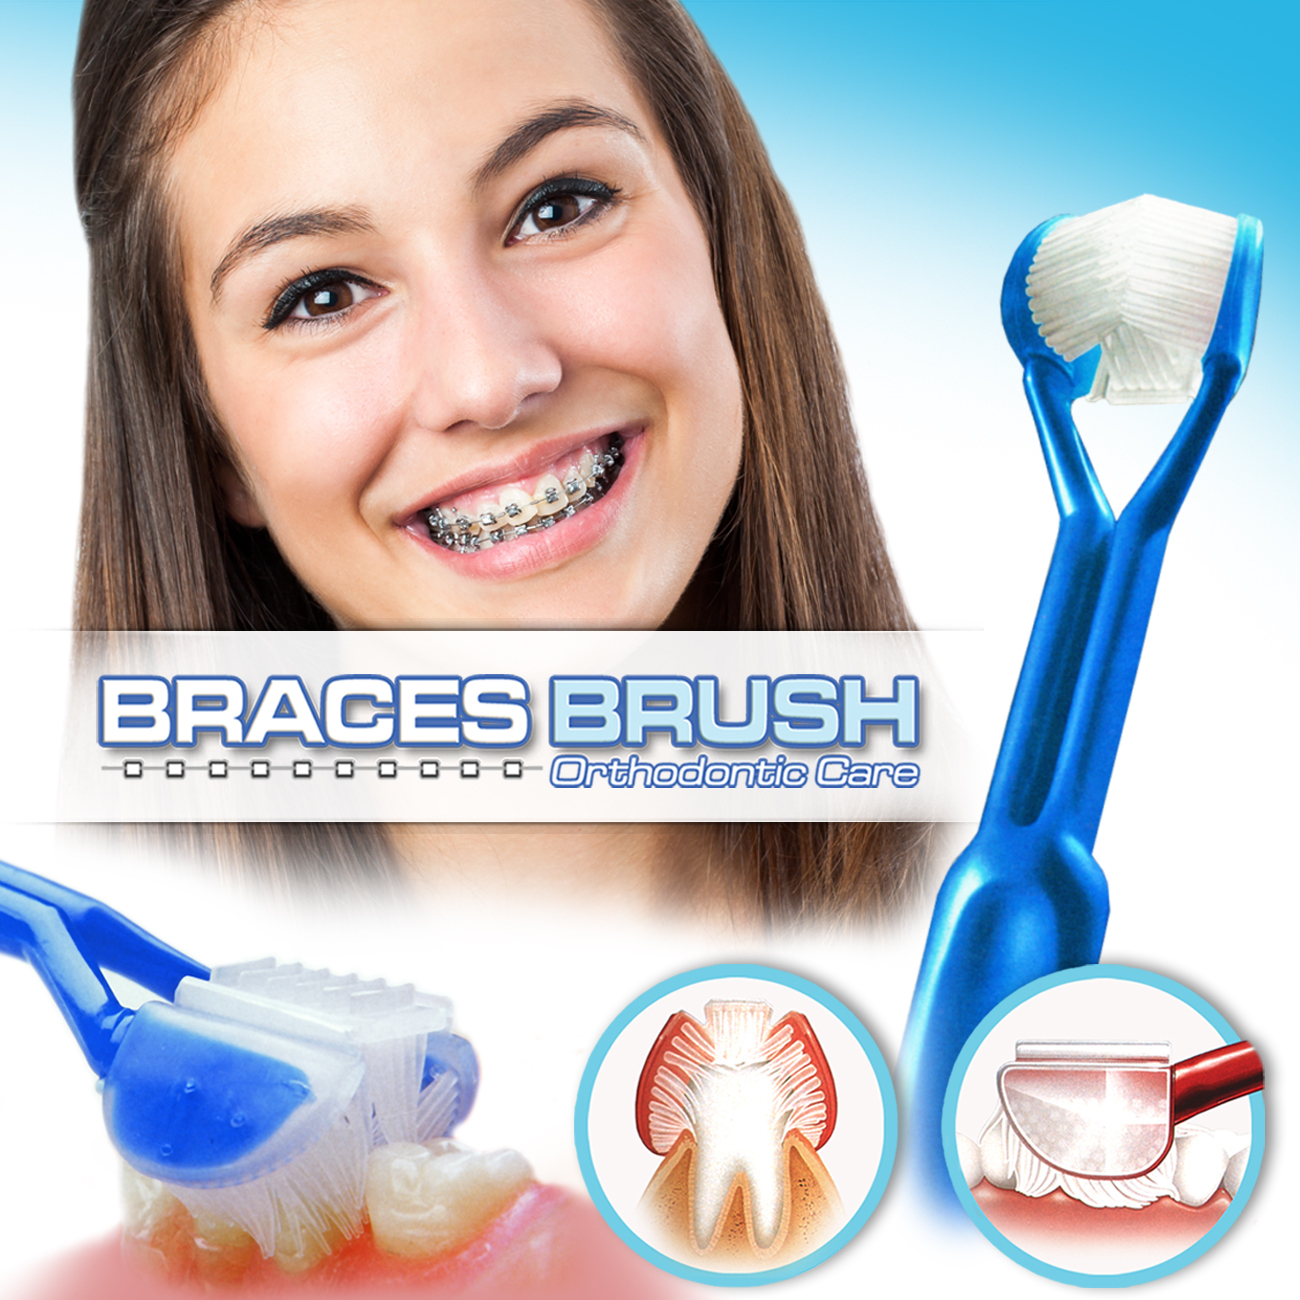 DenTrust BRACES BRUSH :: 3-Sided Toothbrush :: Clinically Proven to Remove More Plaque Around Dental Brackets Design :: Fast, Easy & More Complete Dental Care BRB0001-EW